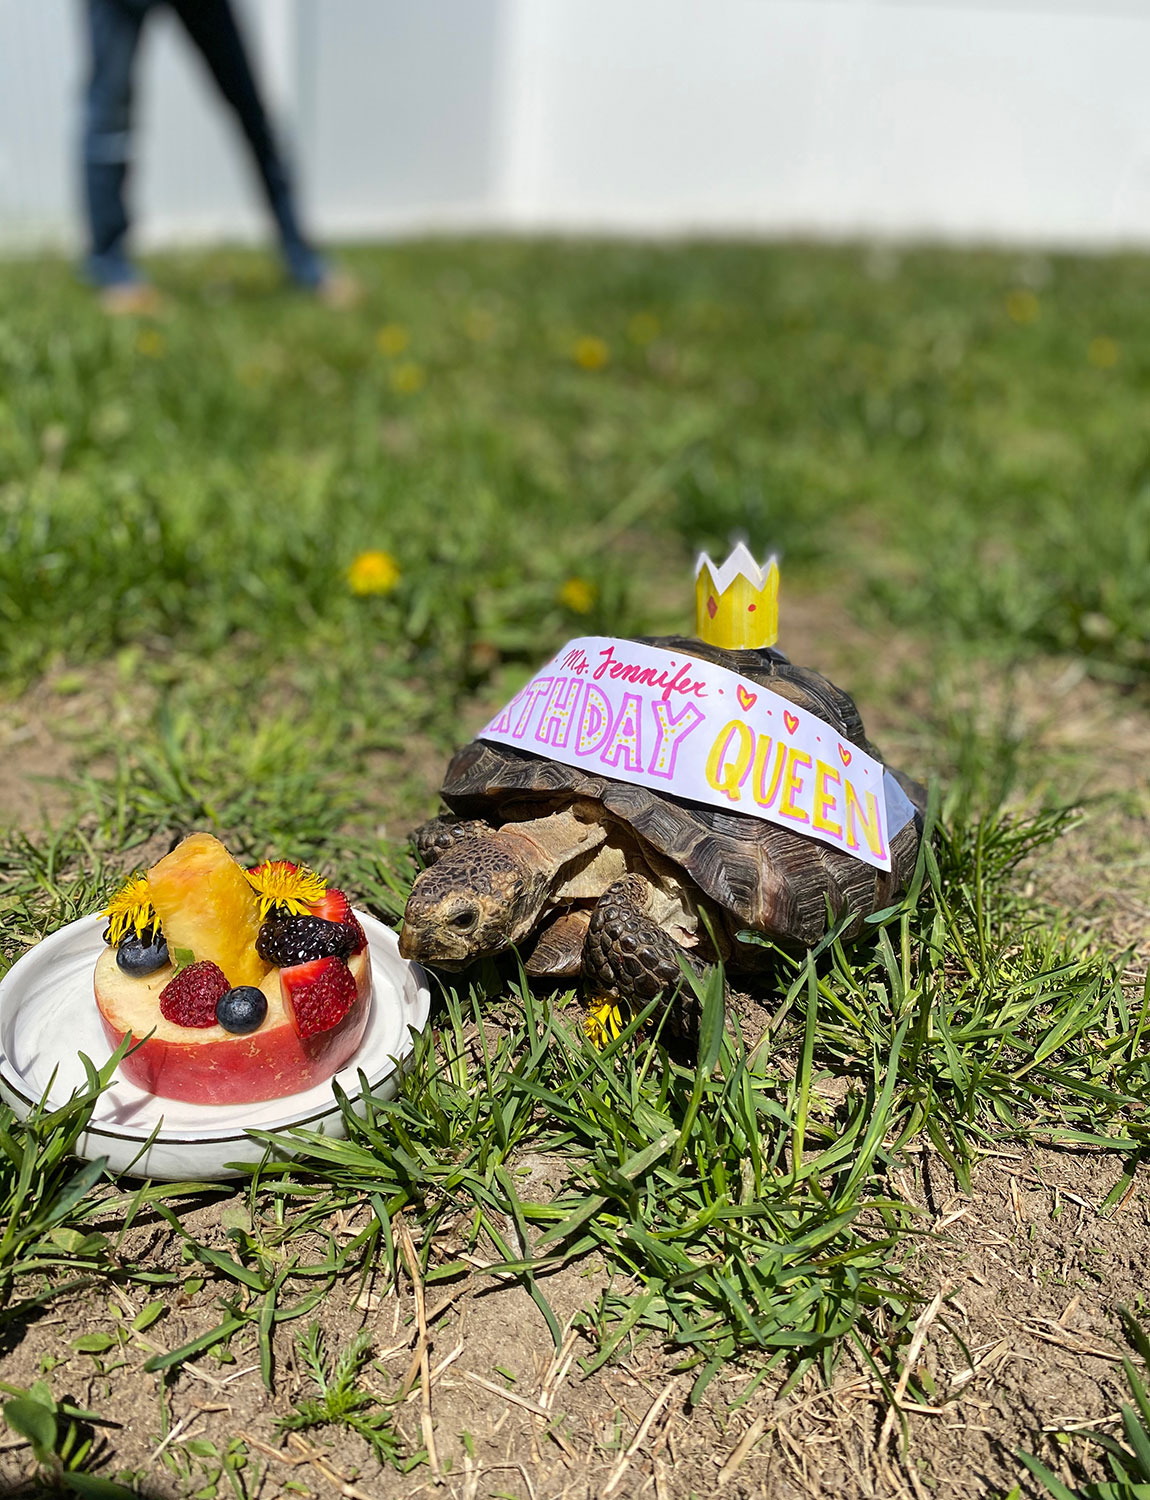 53-year-old tortoise needs home after owner dies of COVID-19